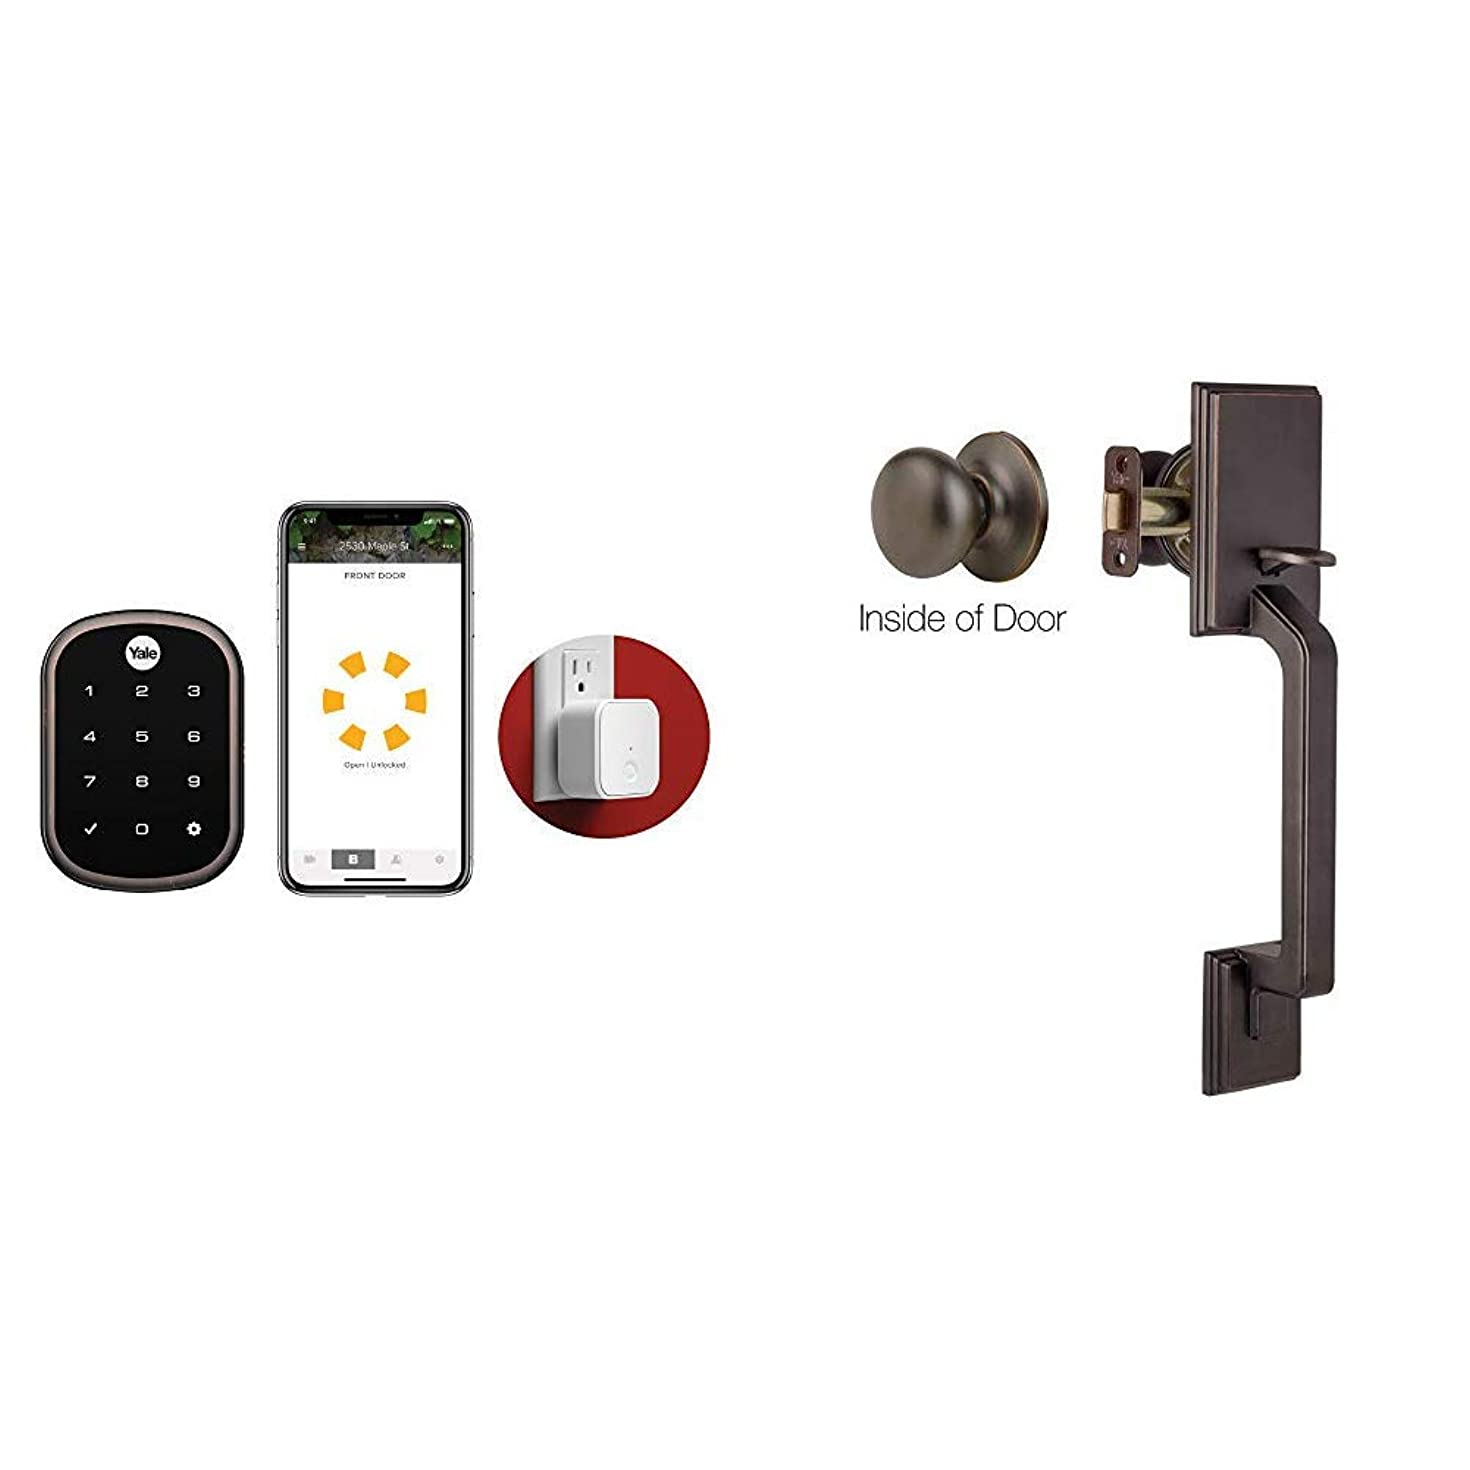 Yale Assure Lock SL Connected by August with Matching Handleset in Oil Rubbed Bronze